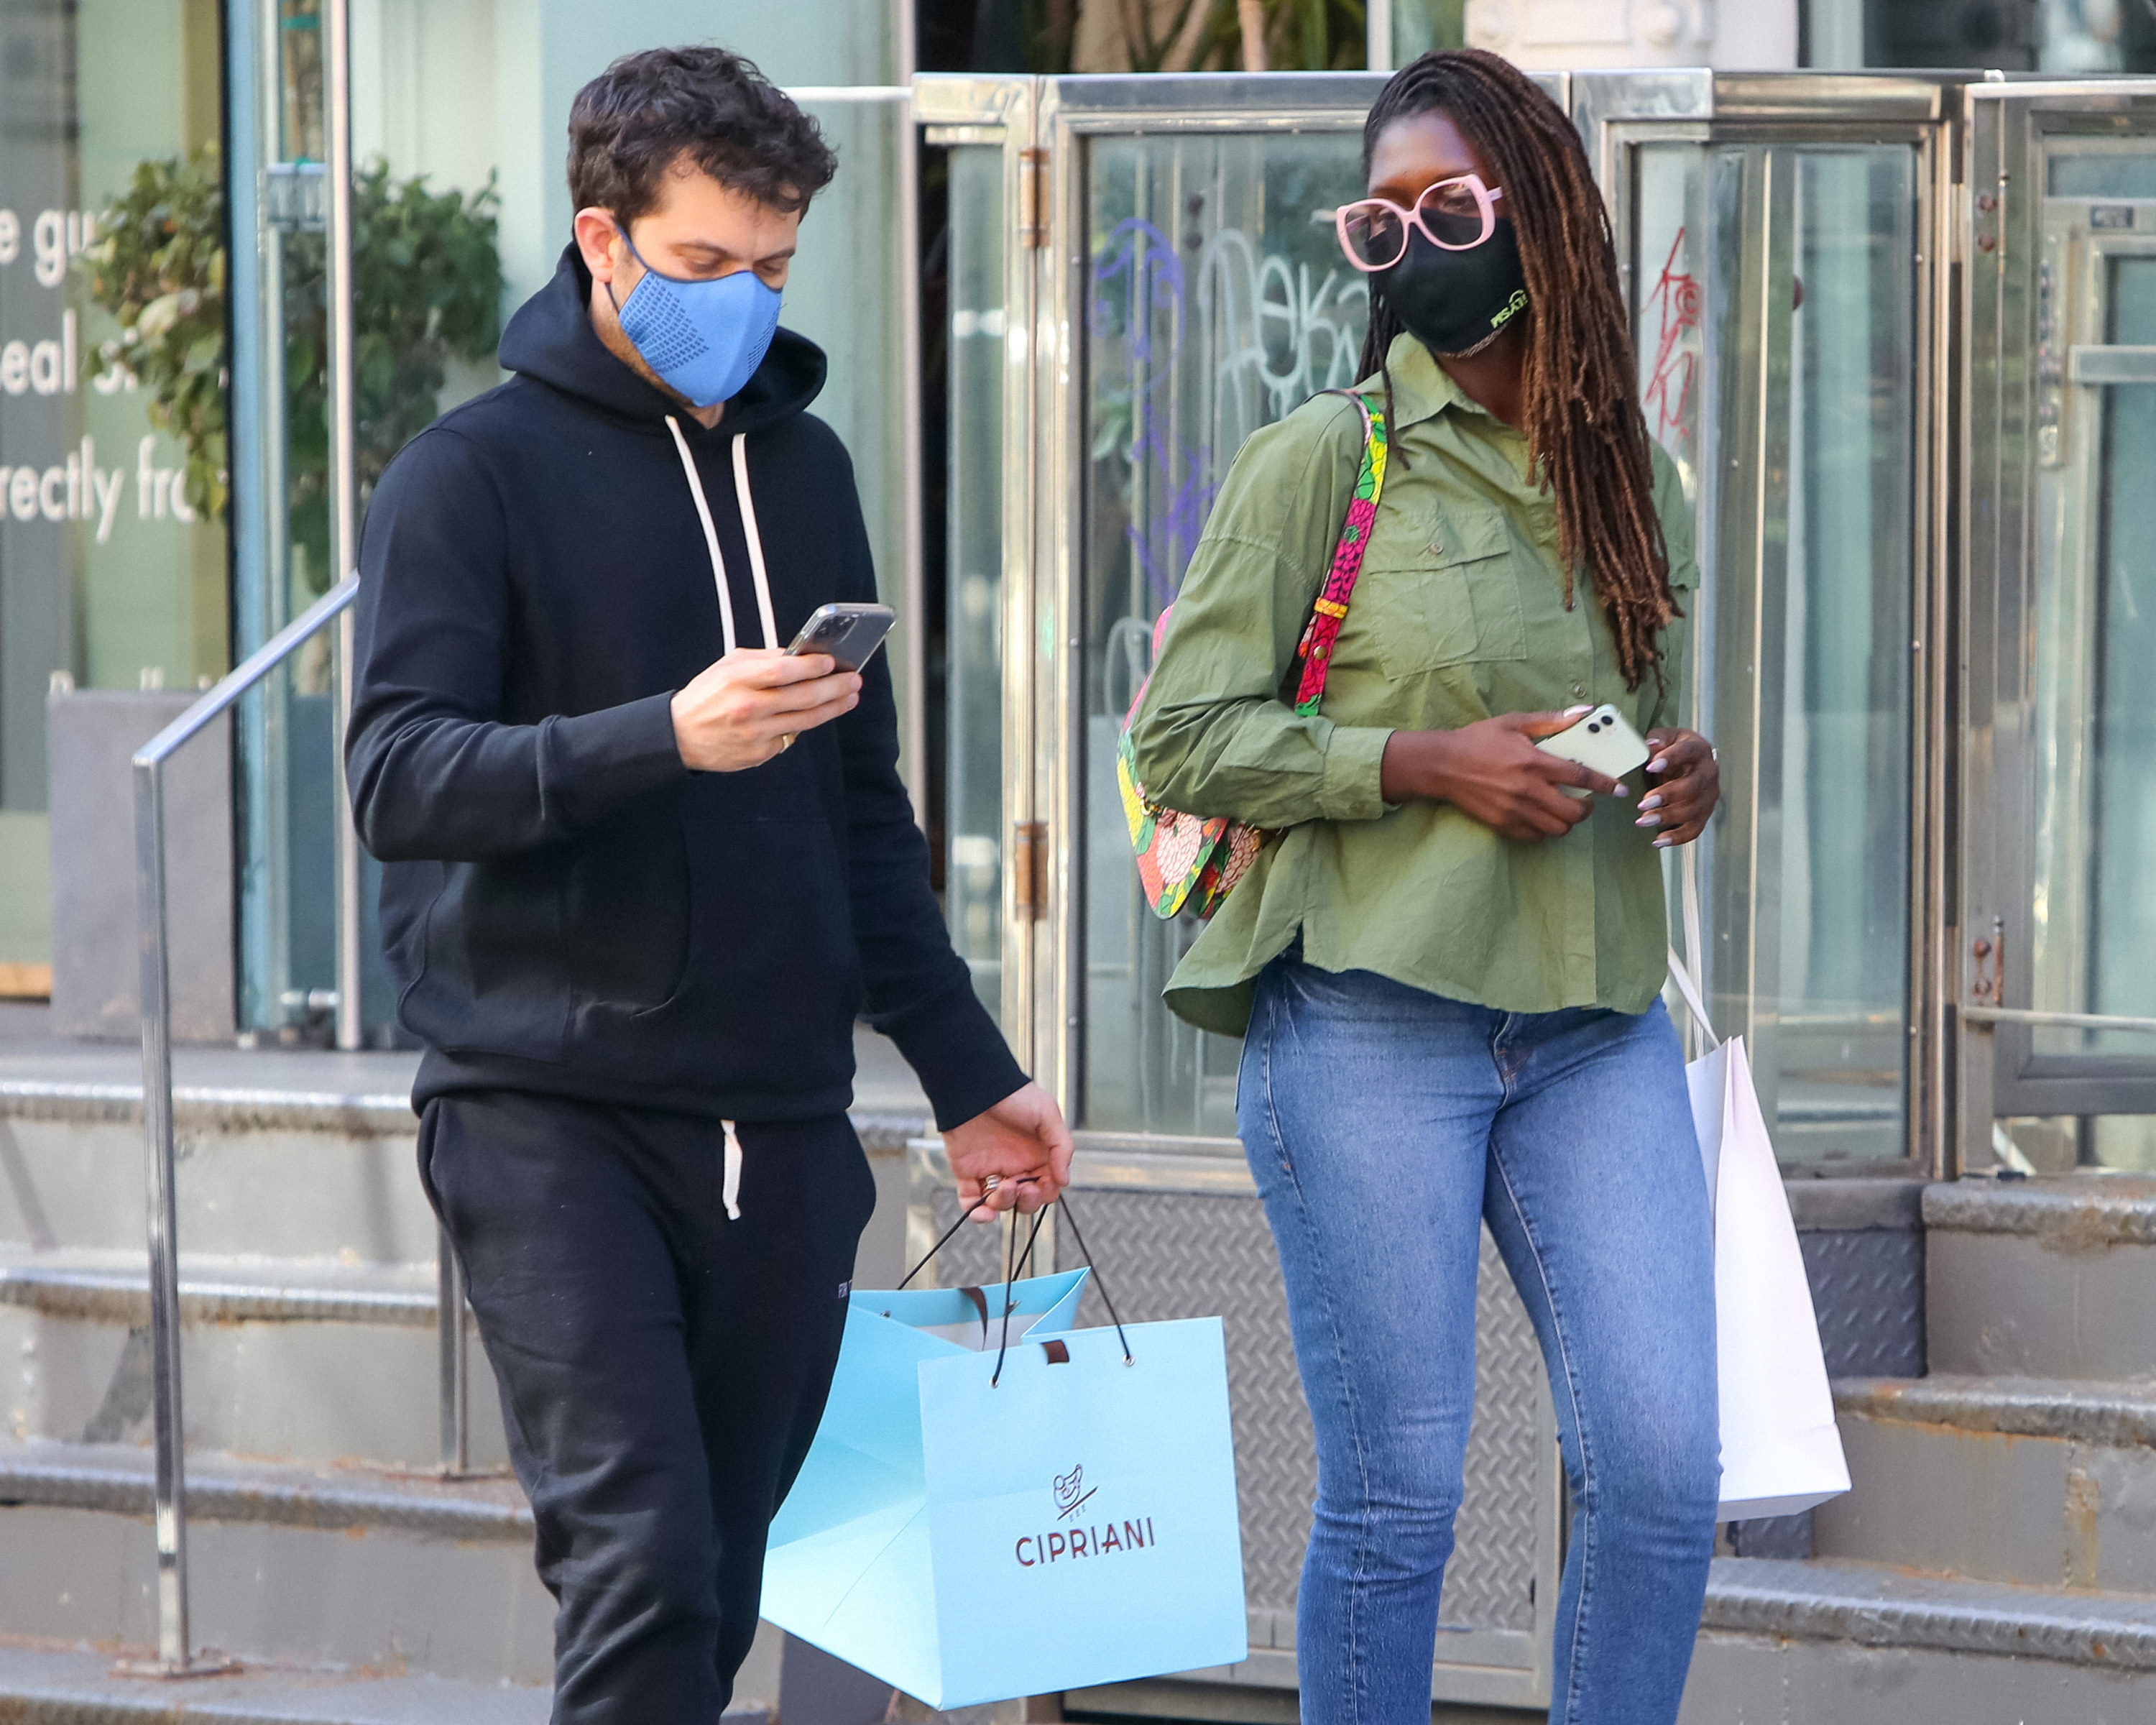 Jackson and Turner-Smith walk down the street while wearing masks